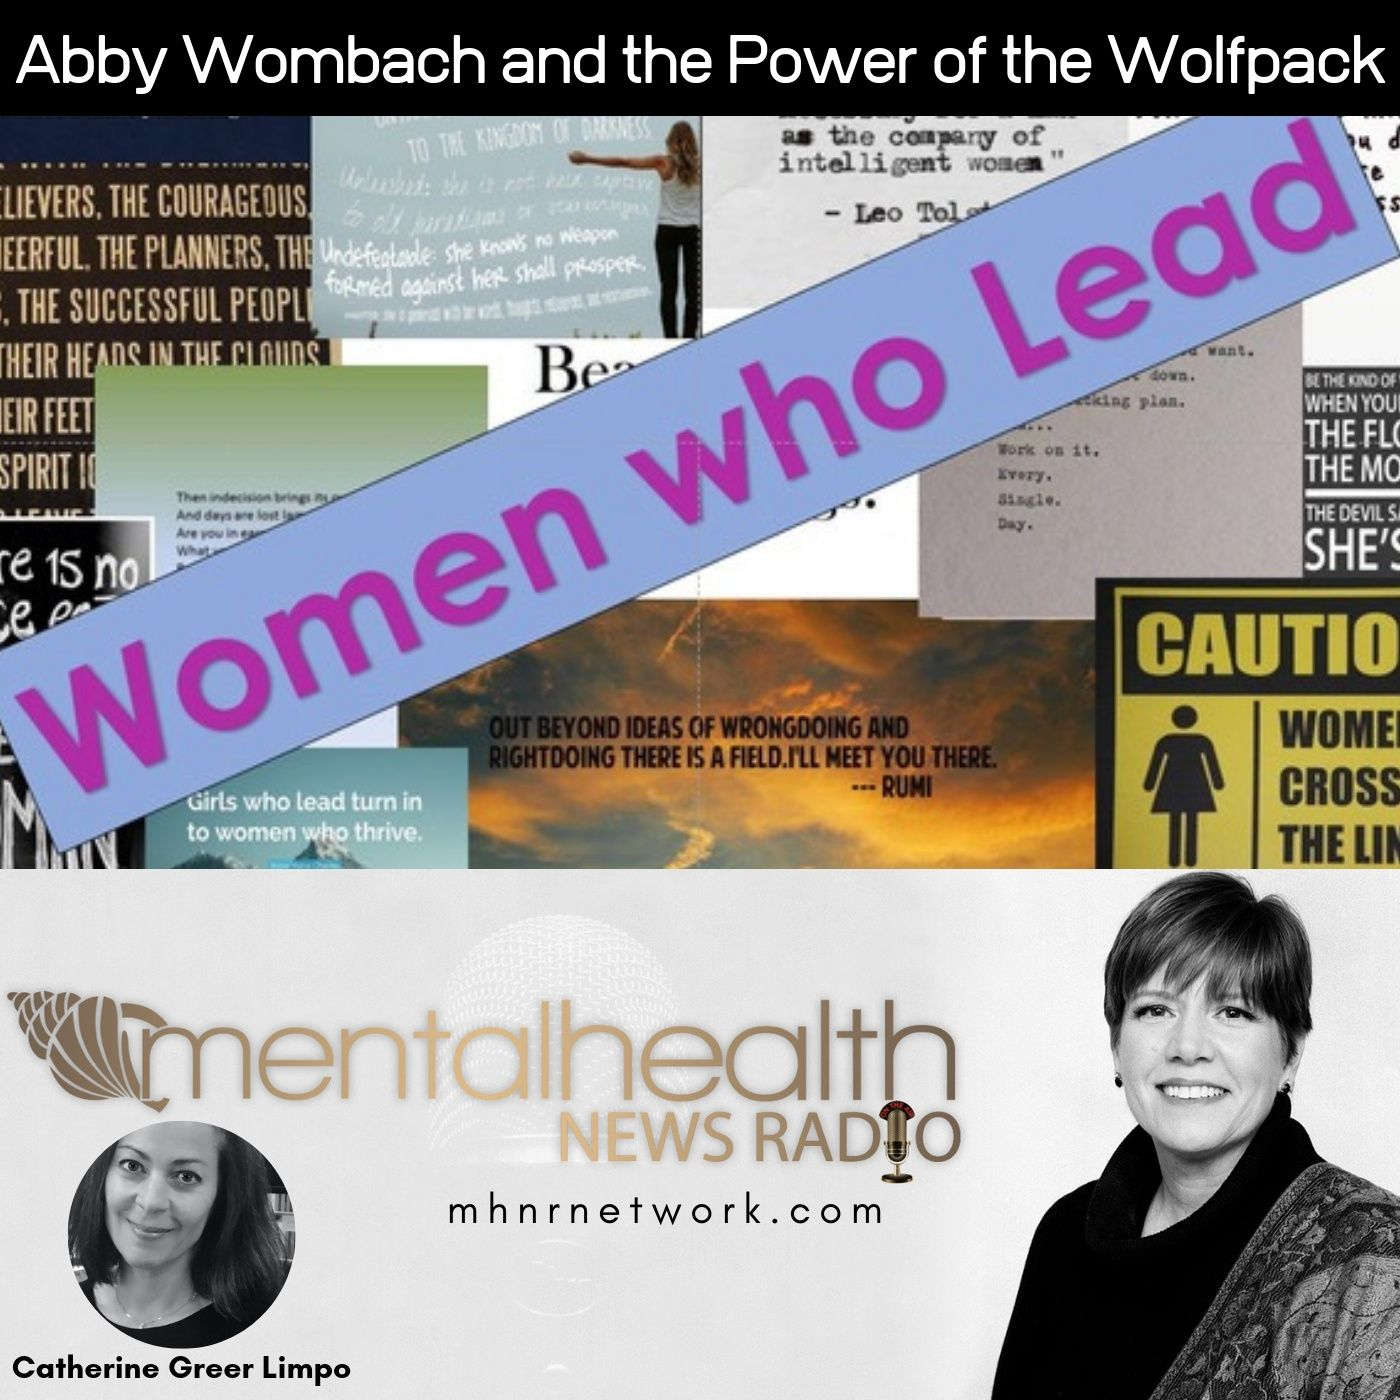 Mental Health News Radio - Women Who Lead: Abby Wambach and The Power of the Wolfpack